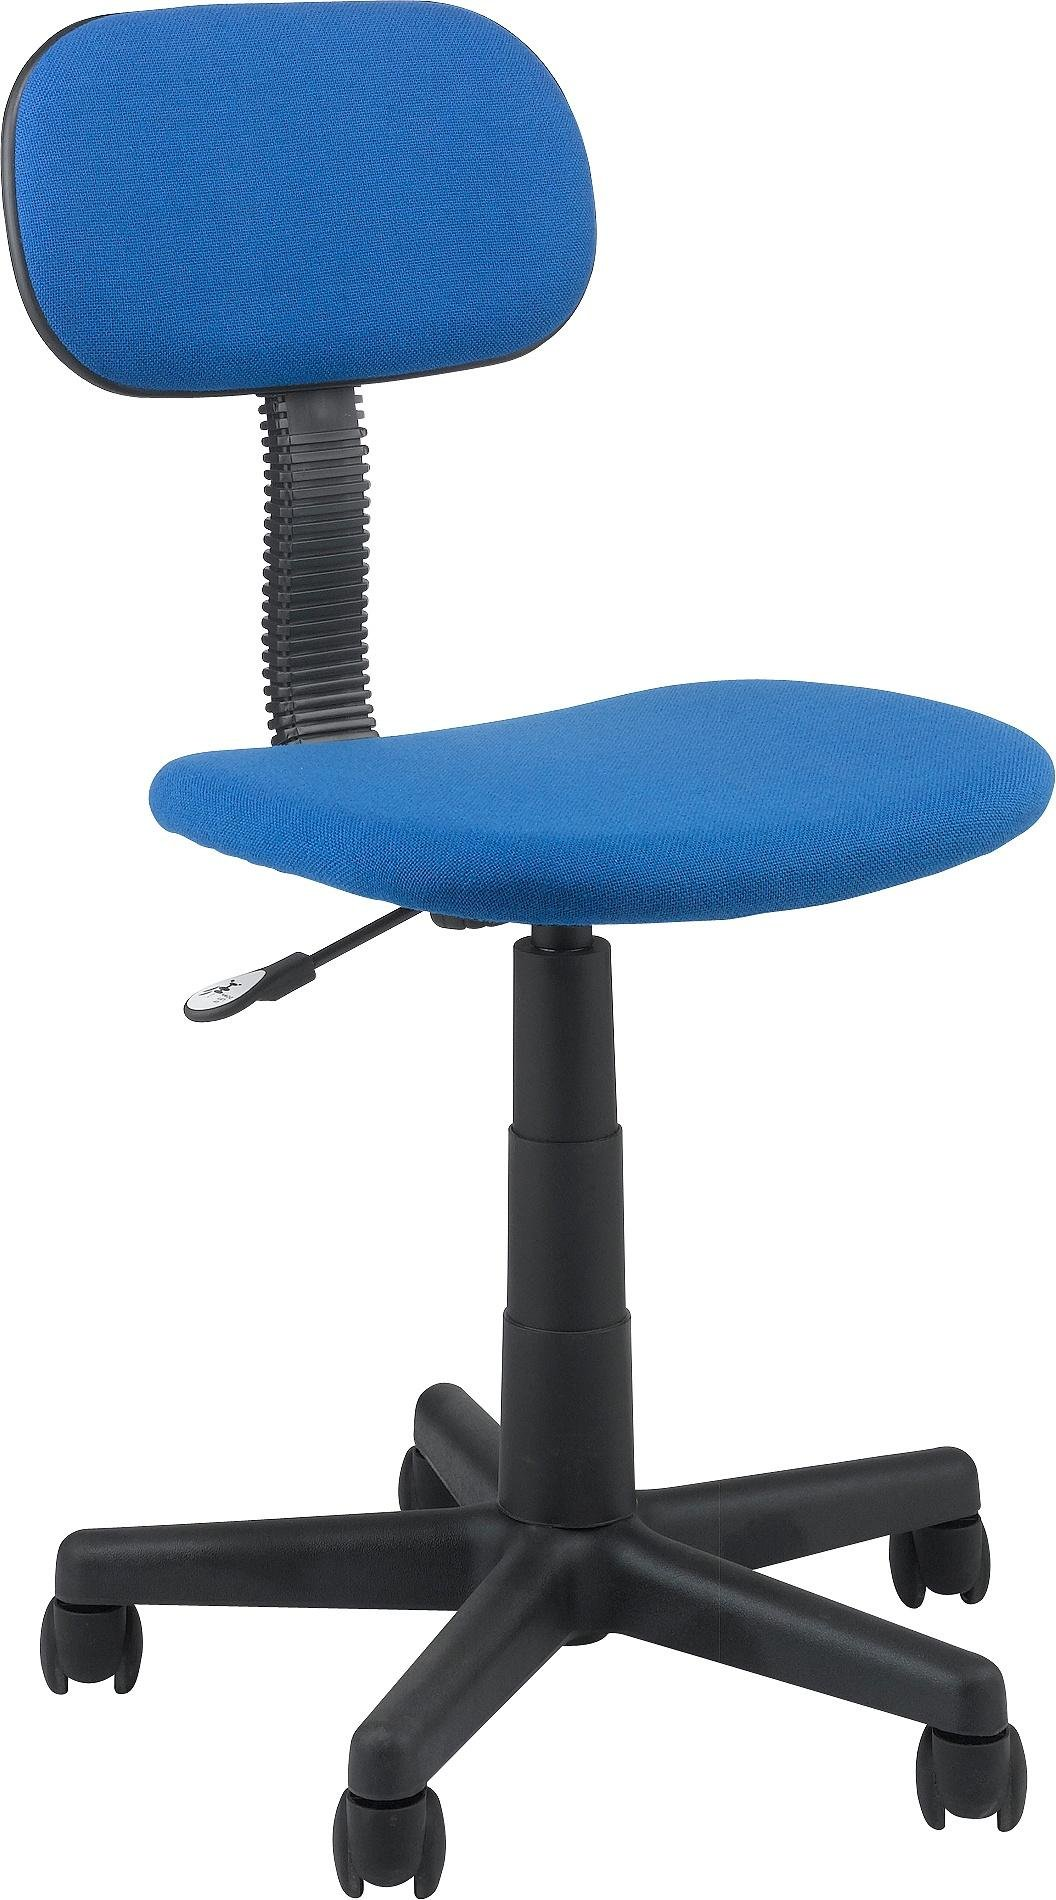 Buy Argos Home Gas Lift Height Adjustable Office Chair   Blue | Office  Chairs | Argos